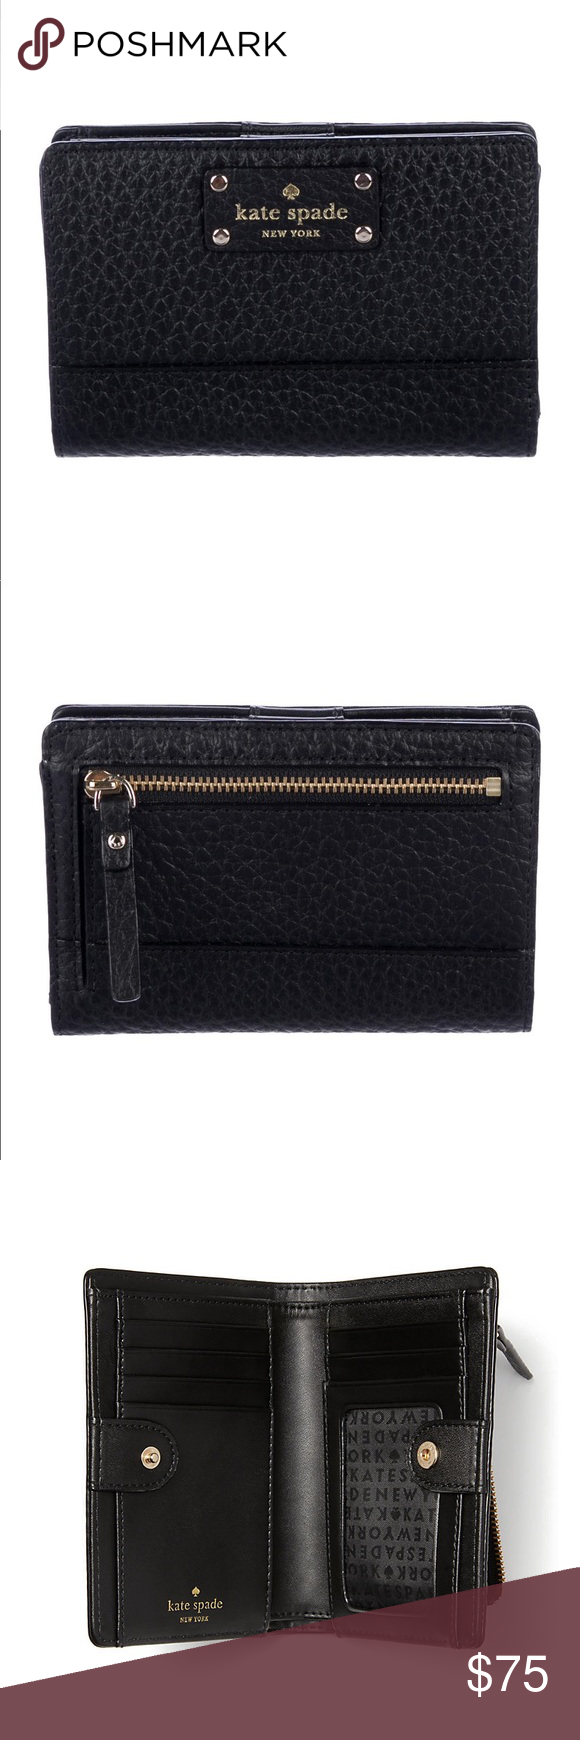 24519ec28892 NEW Kate Spade Black Bi Fold Wallet Comes with authencity card Black ...